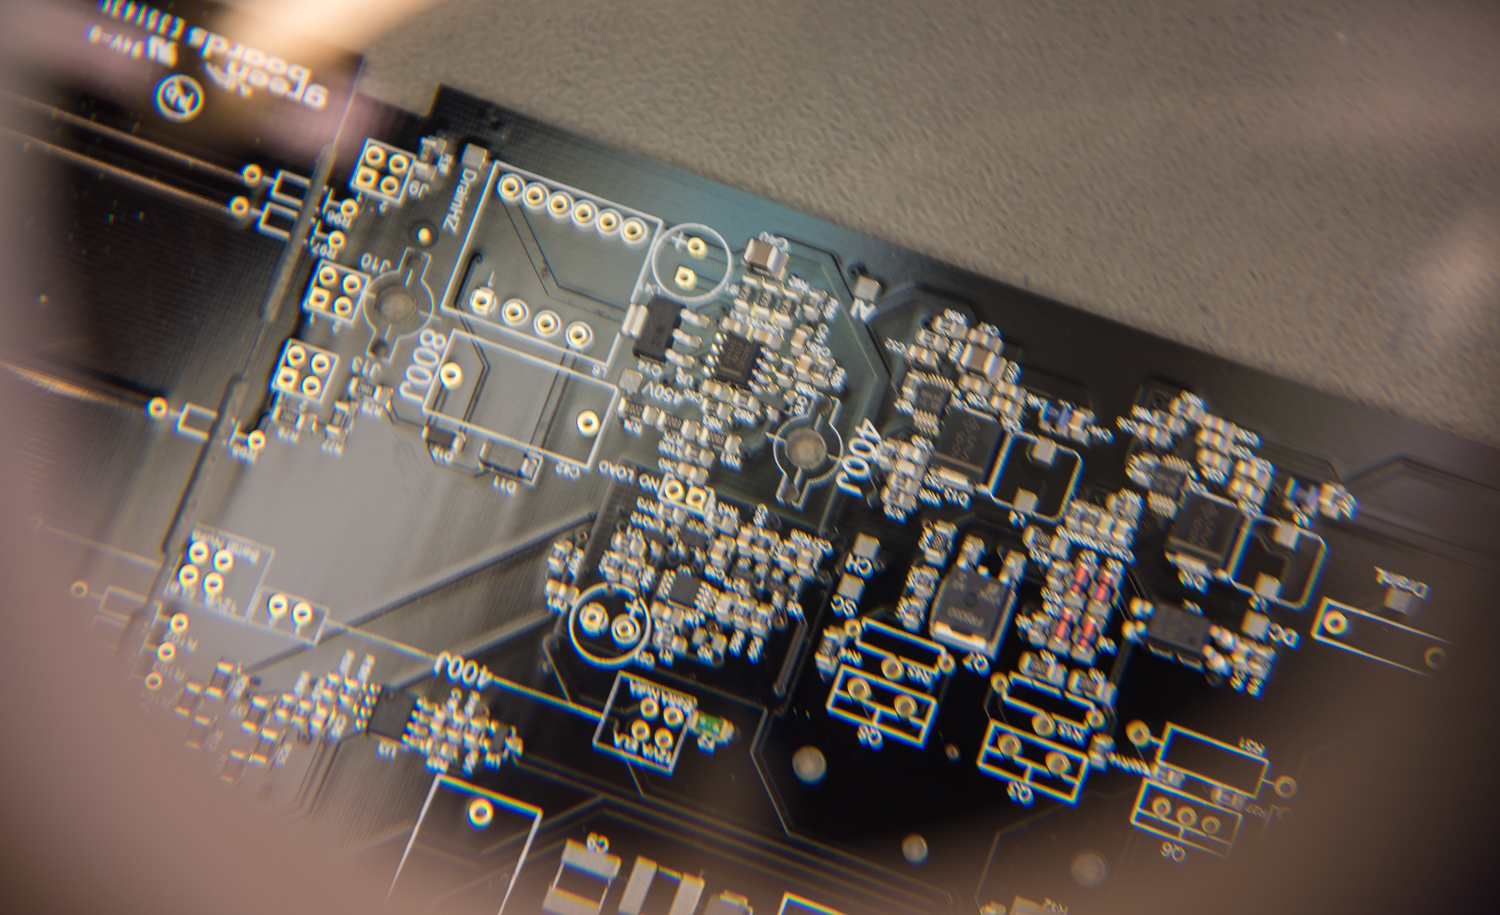 Examining a printed circuit board by Will Prentice